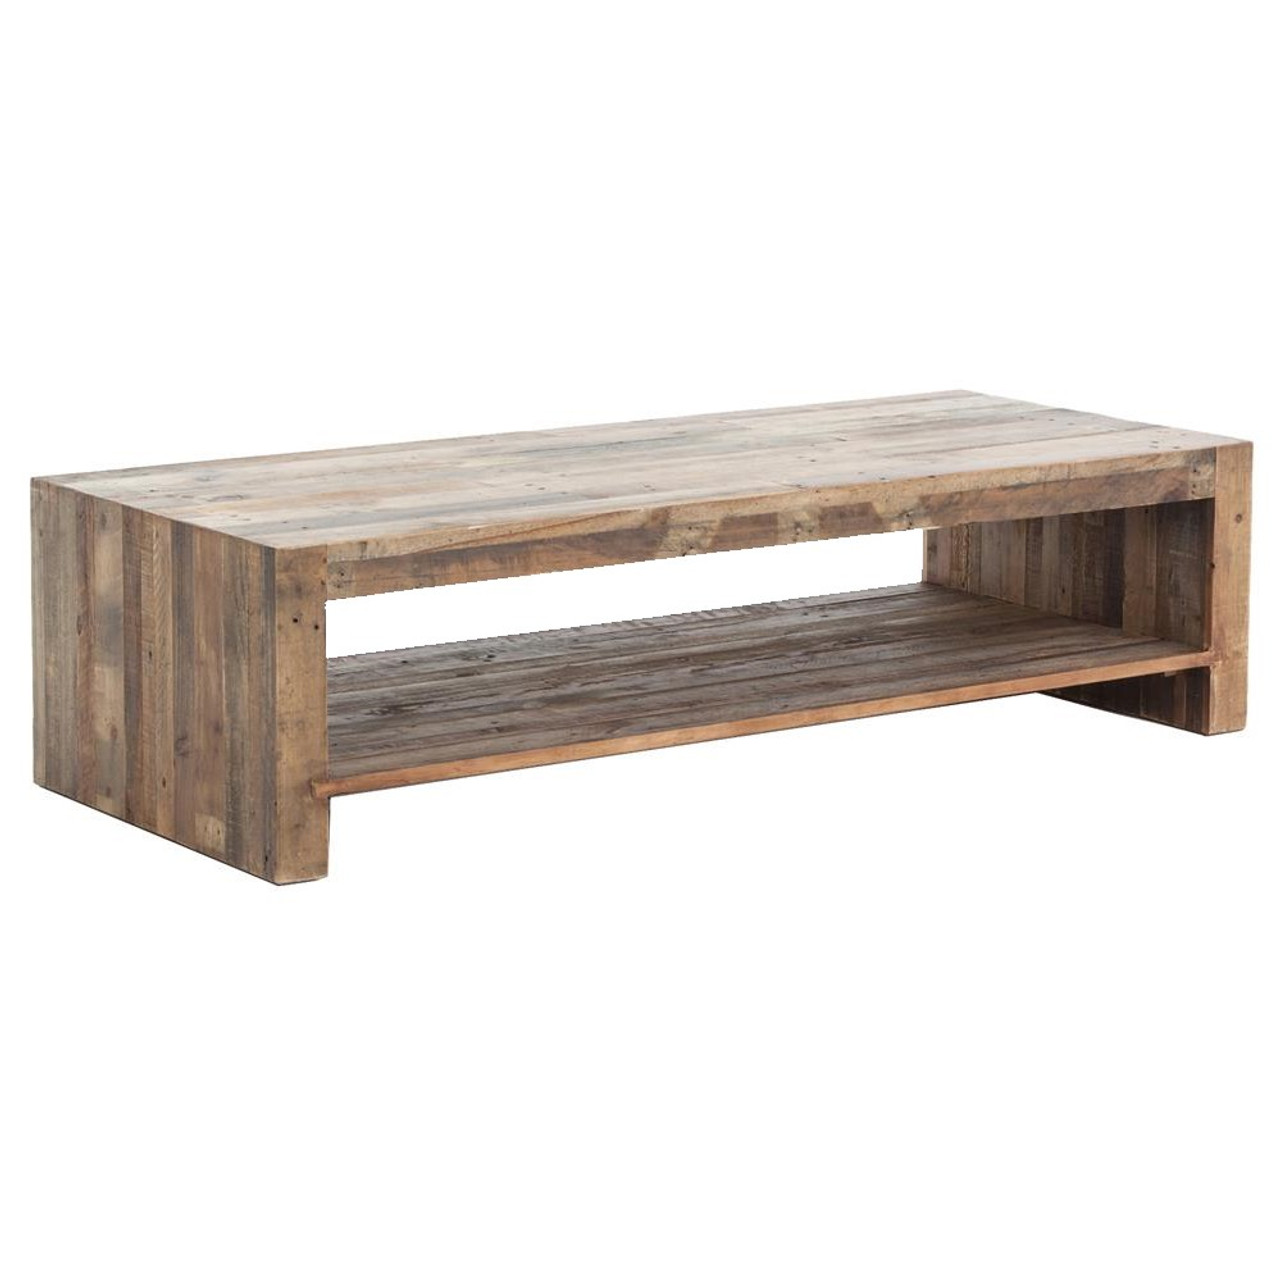 Angora Rustic Modern Reclaimed Wood Coffee Table 60 Zin Home